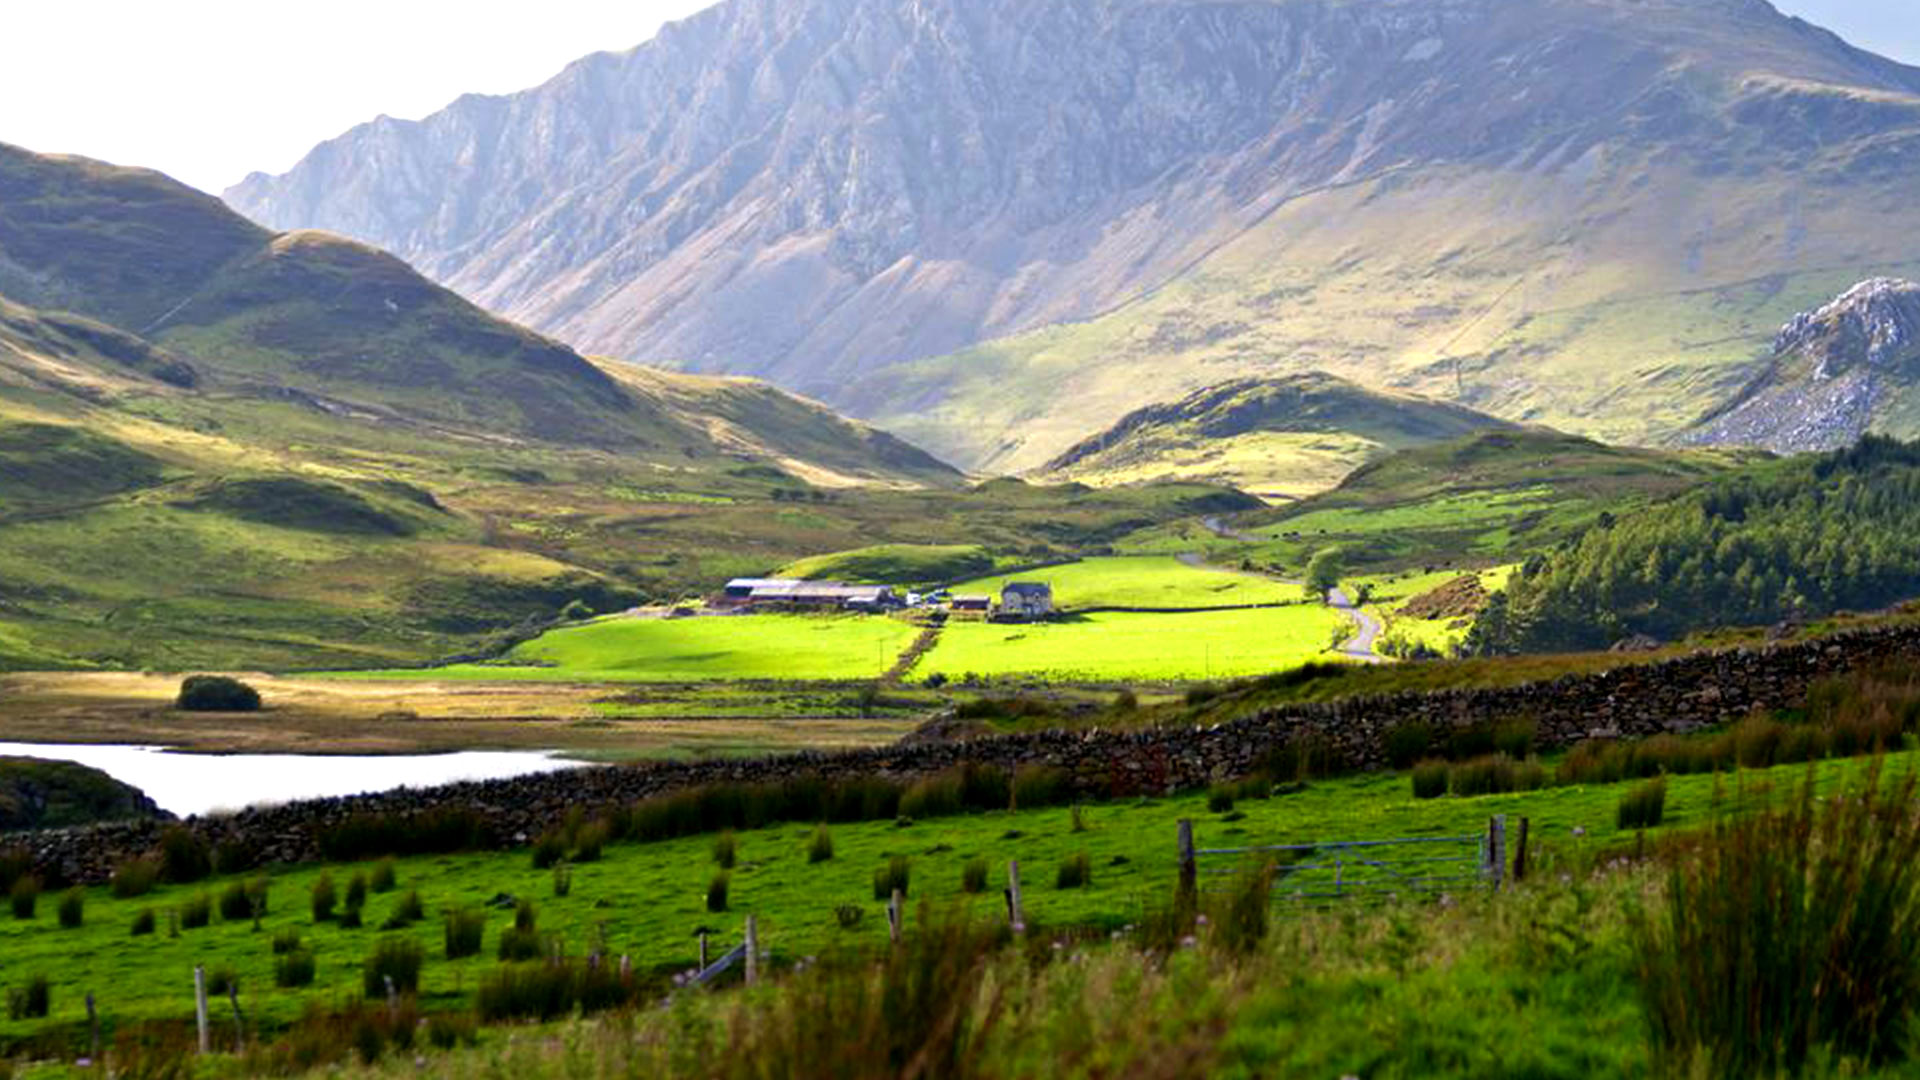 Snowdonia National Park Landscape Photo